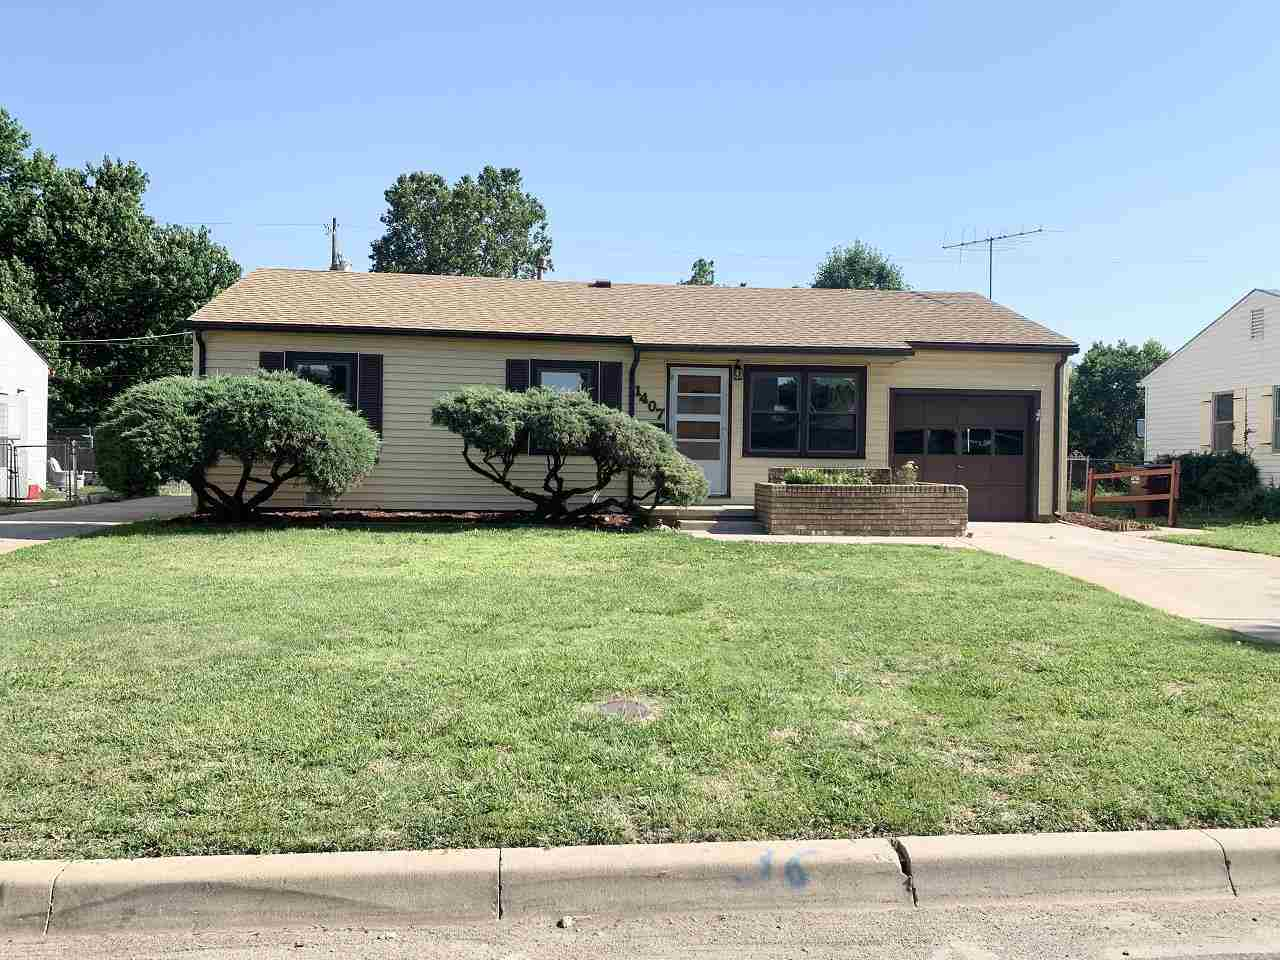 Tons of space in this recently updated home! You'll be hard-pressed to find a 4 bed, 2 bath home in